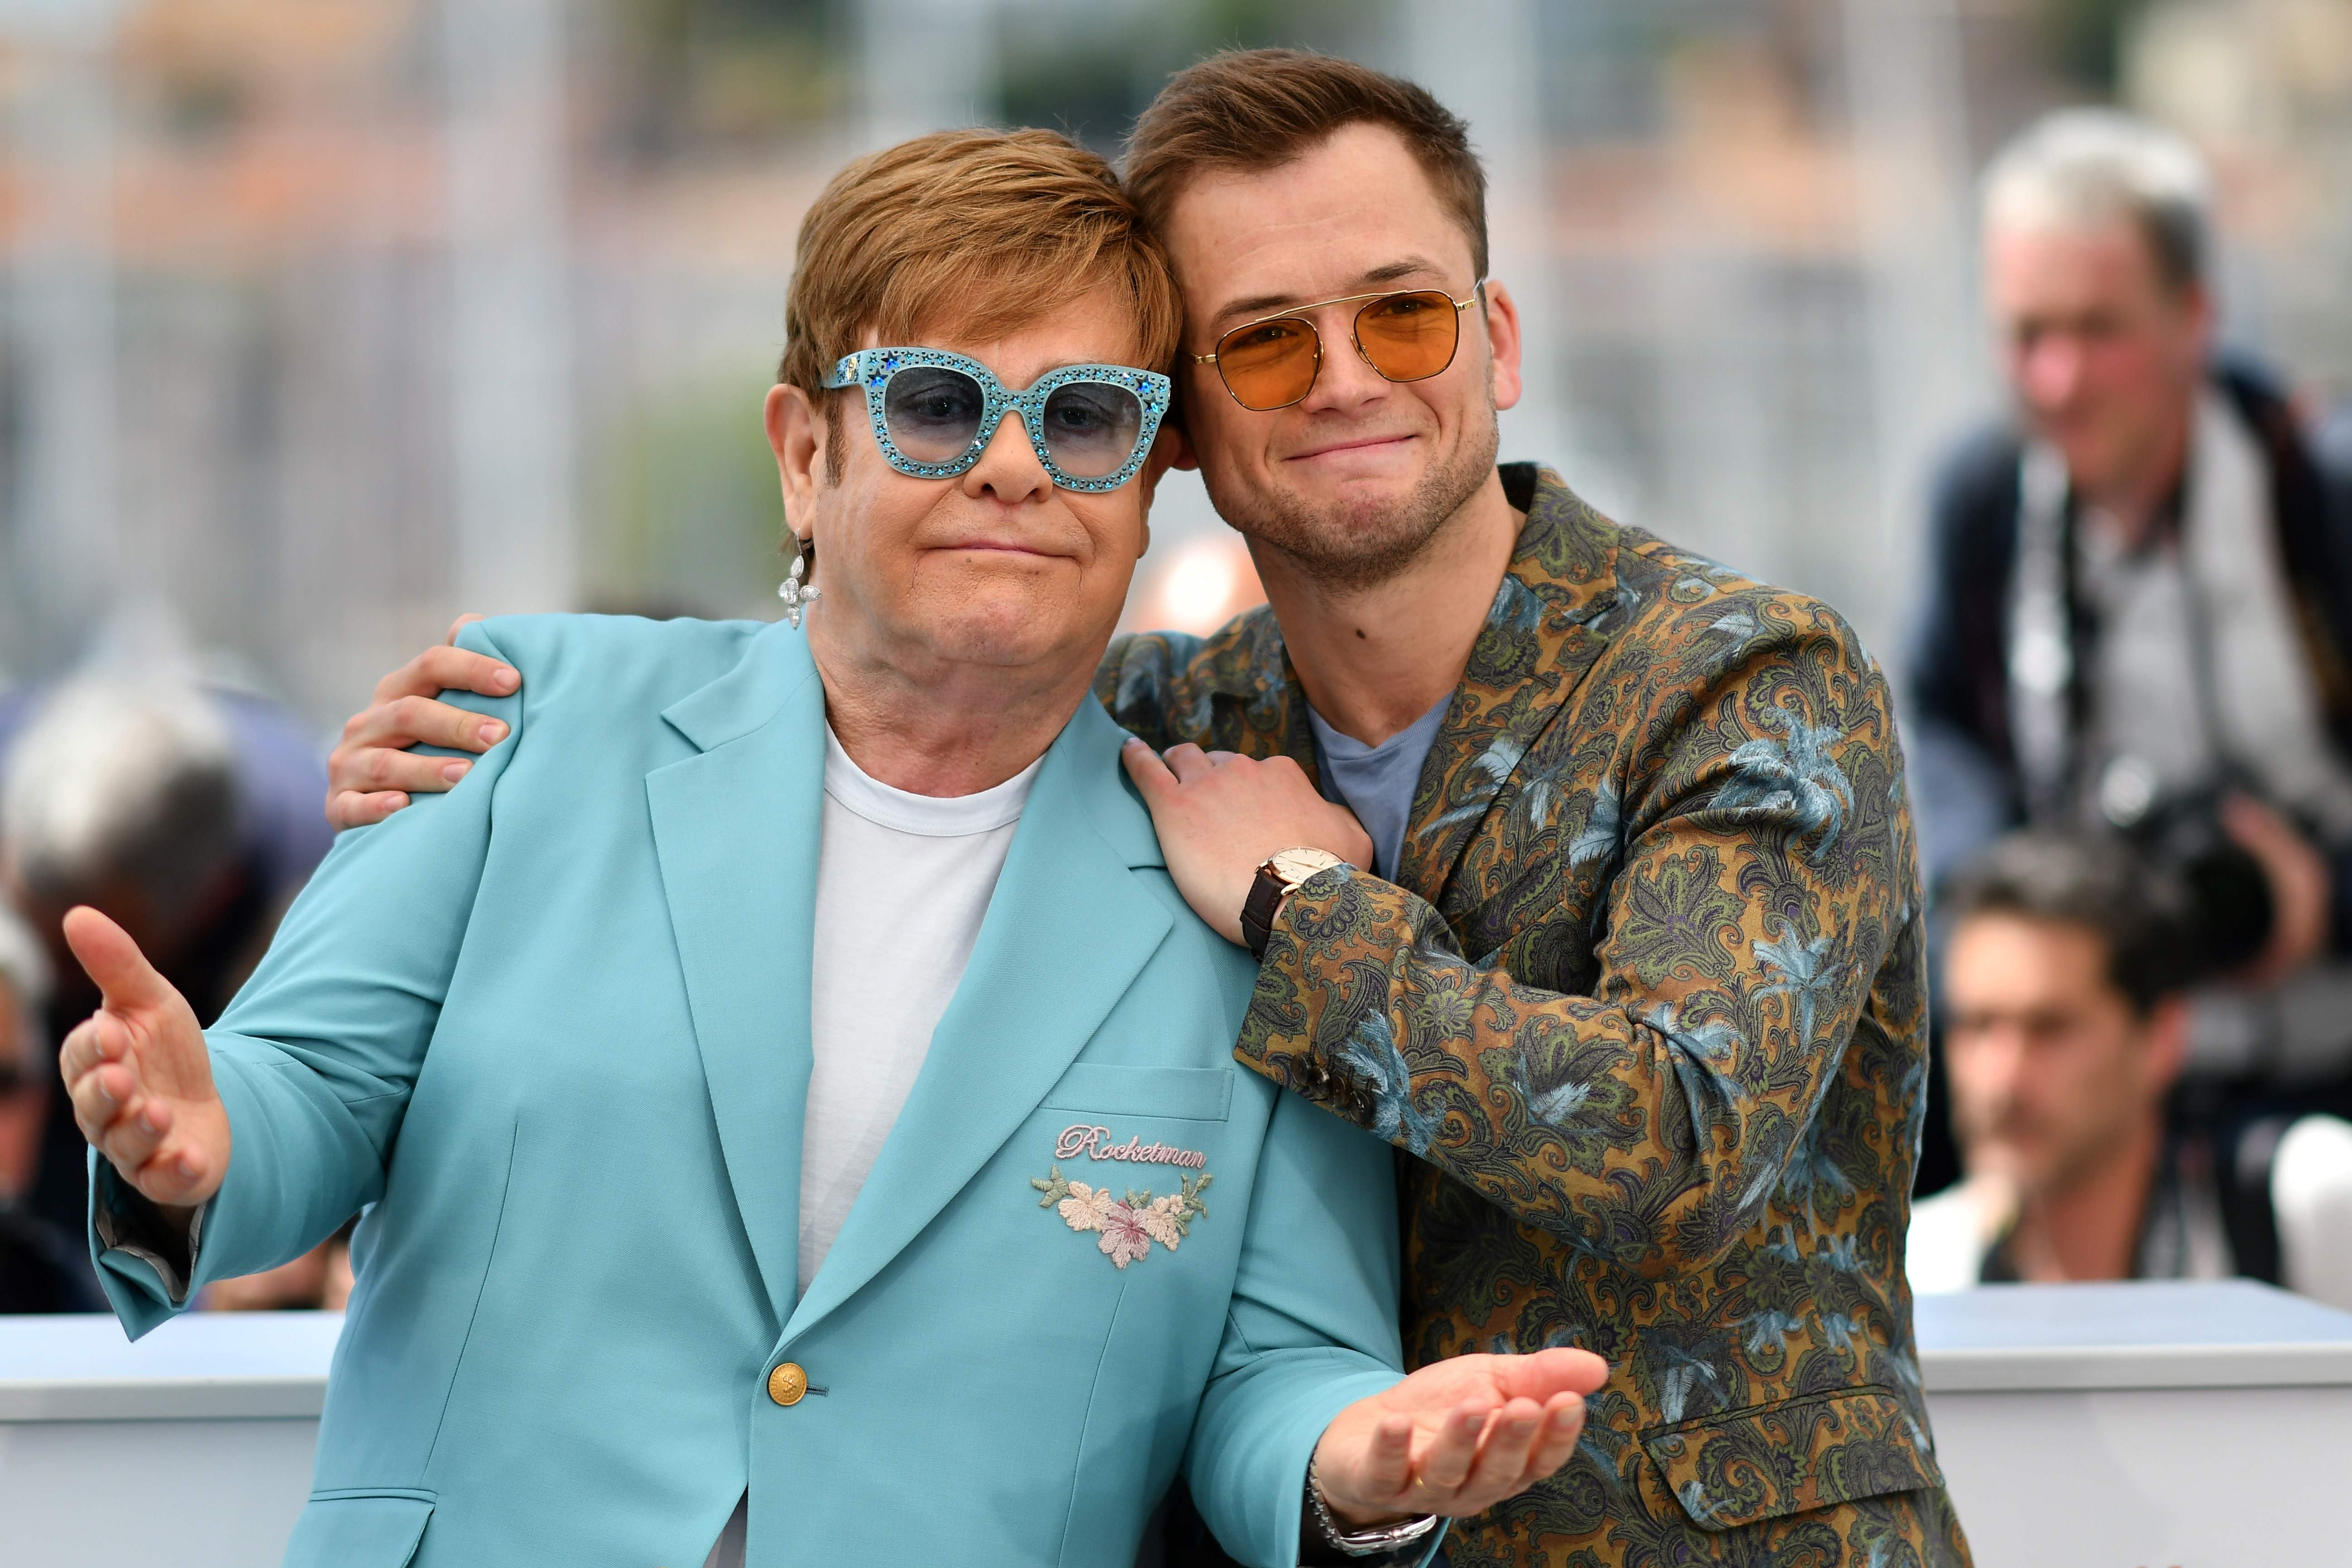 Fan frustration: Elton John tickets sell out fast, then turn up on resale sites at huge markup